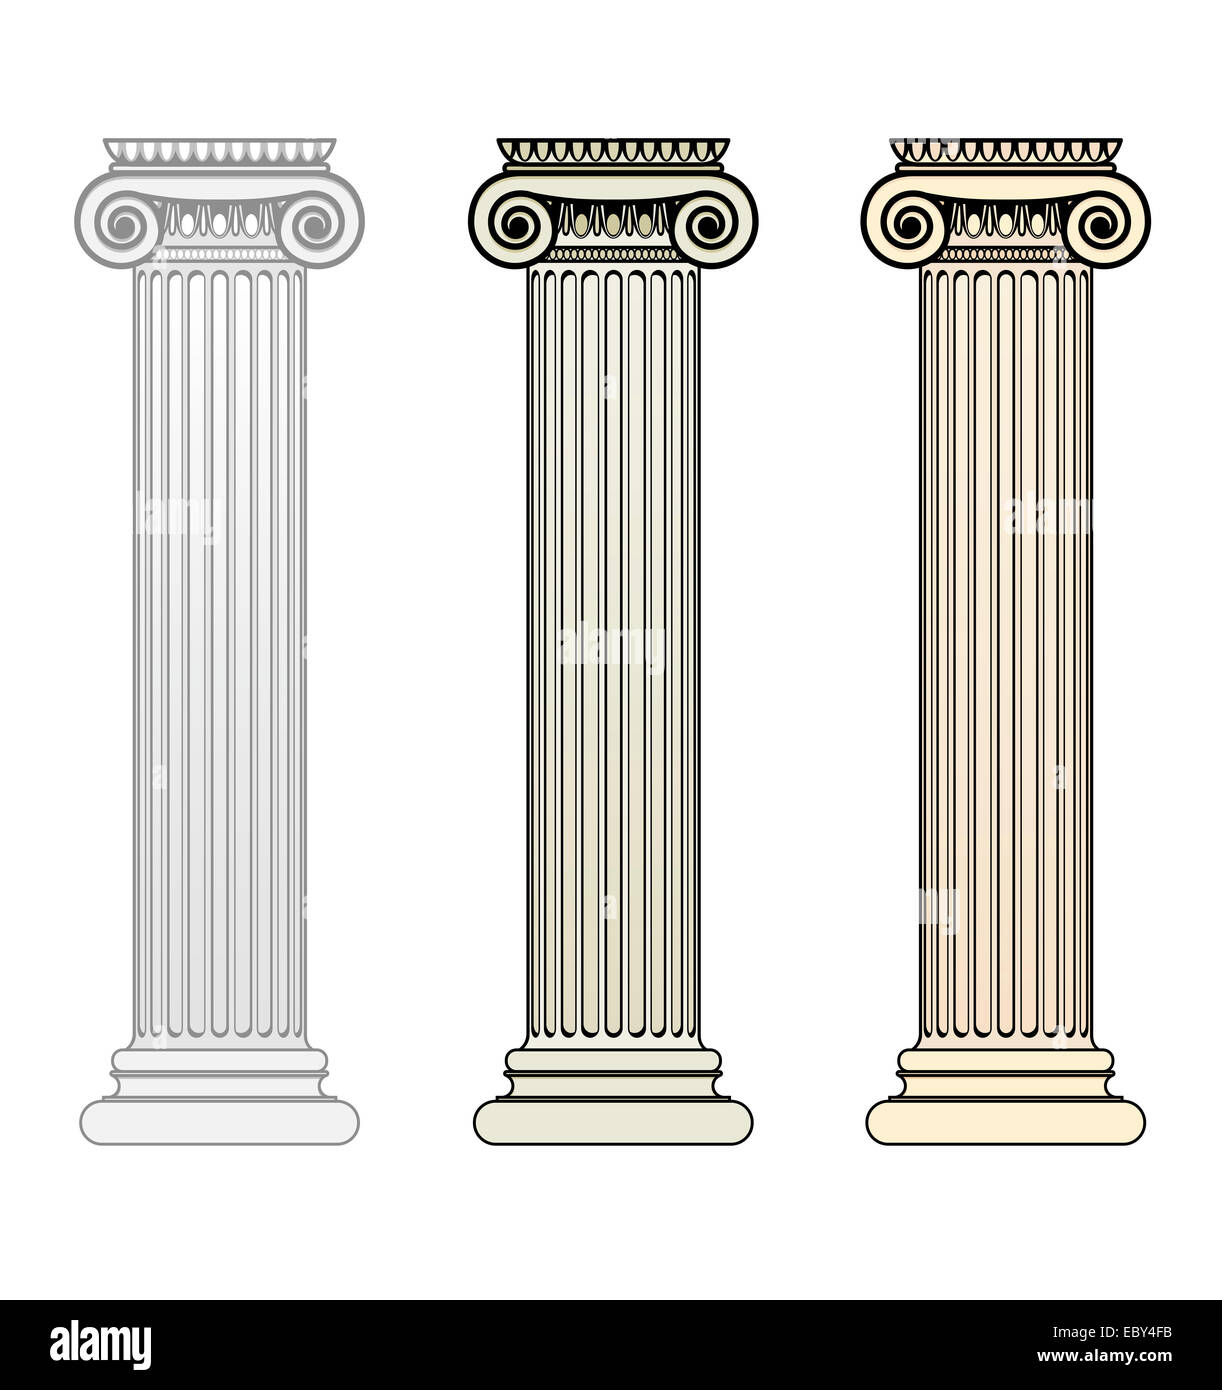 Three Ionic Columns with different toning - Stock Image